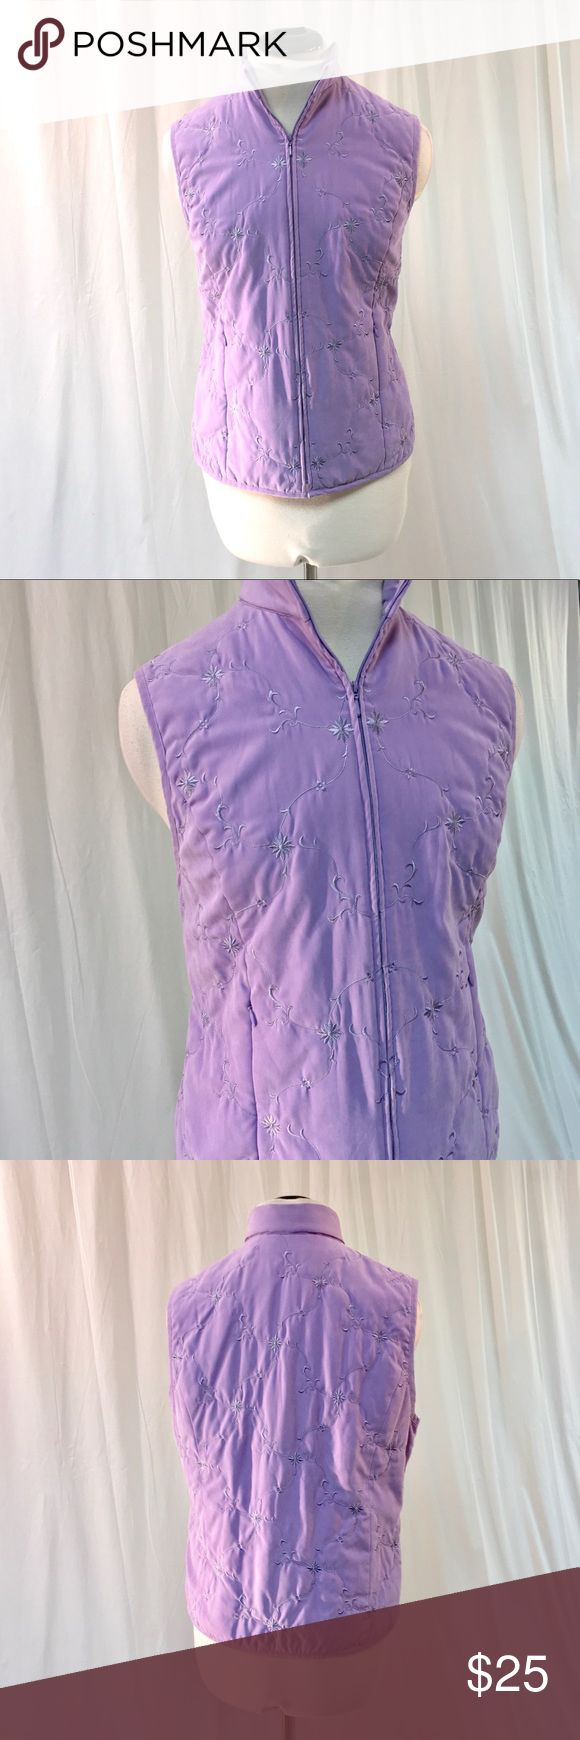 Talbots Embroidered Zip Vest Pretty purple zip up vest from Talbots! Has zippered hand pockets in front. Great condition, women's size medium. Talbots Jackets & Coats Vests